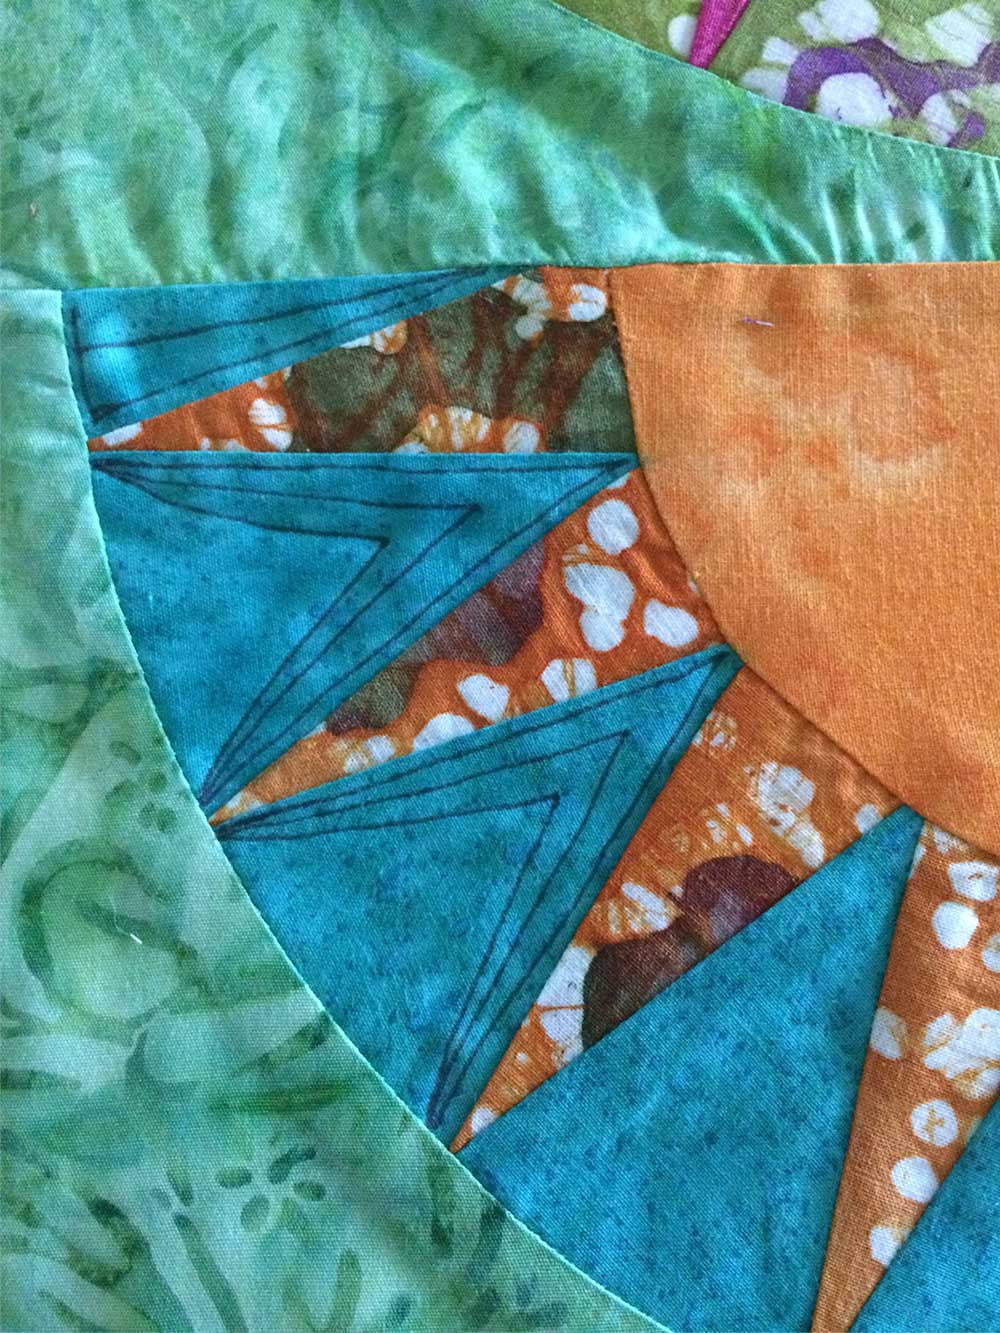 Pen marking stitch ideas on my quilted placemat